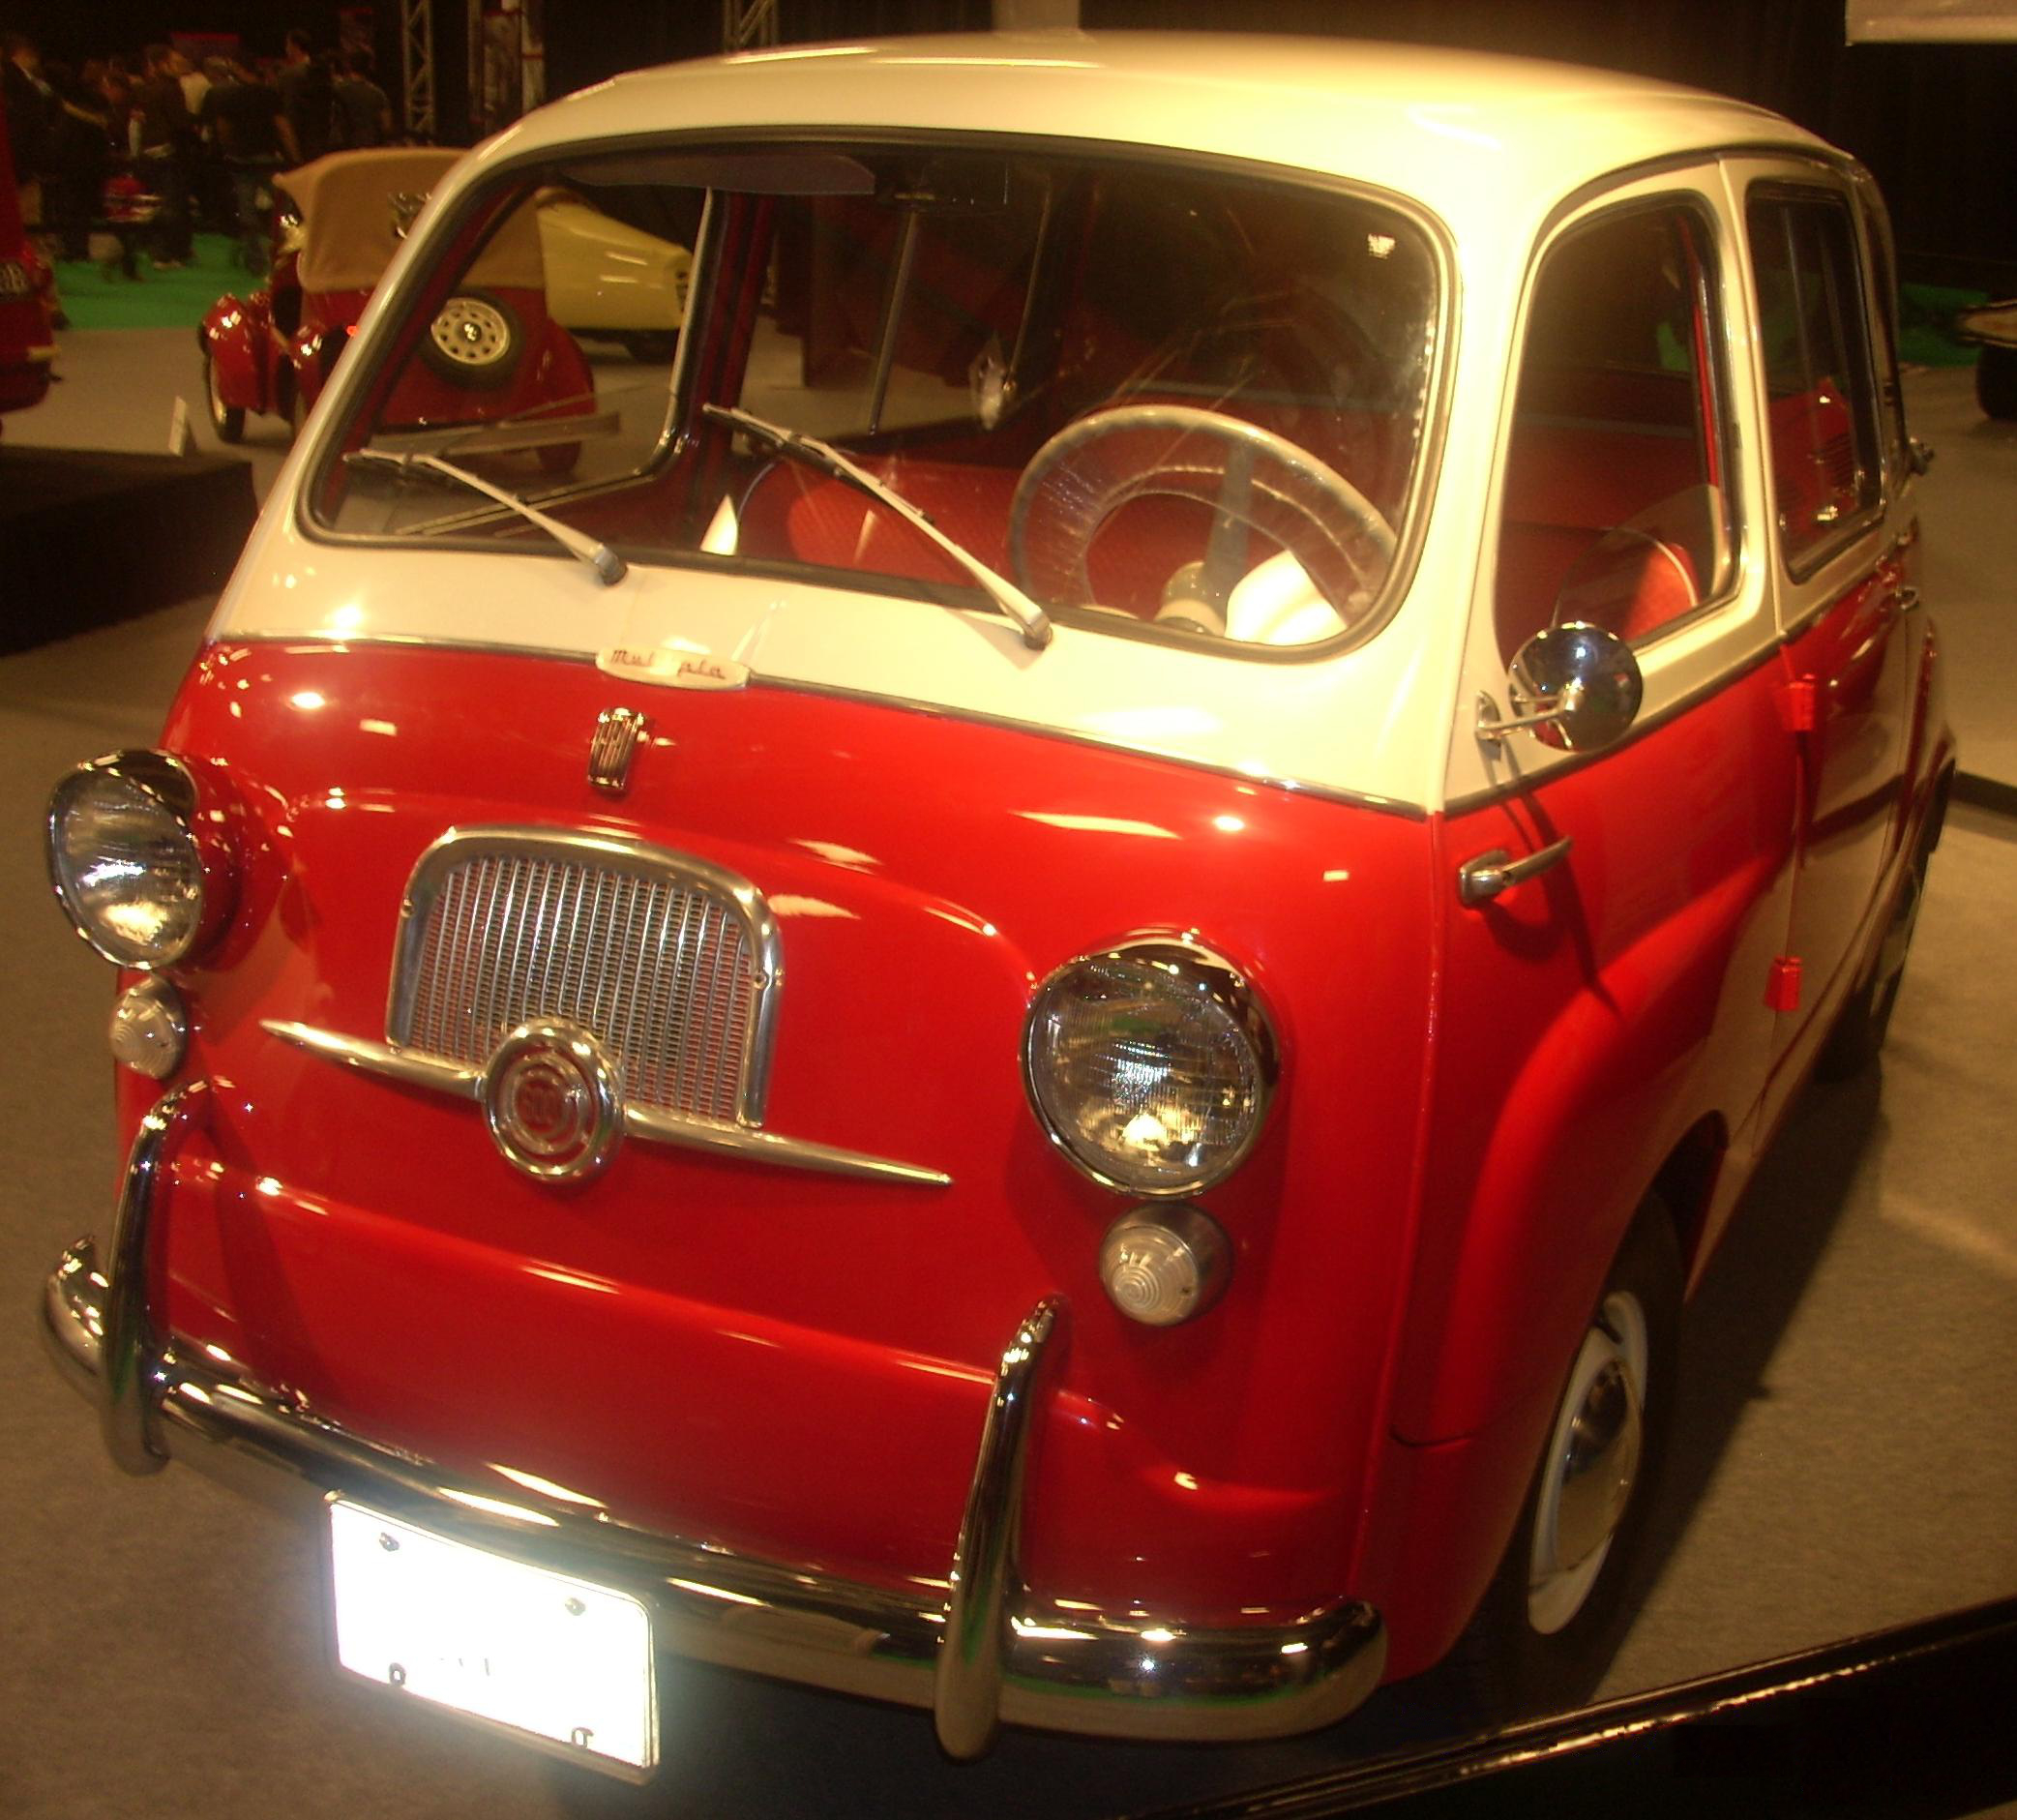 File:'59 Fiat 600 Multipla (MIAS '10).JPG - Wikimedia Commons